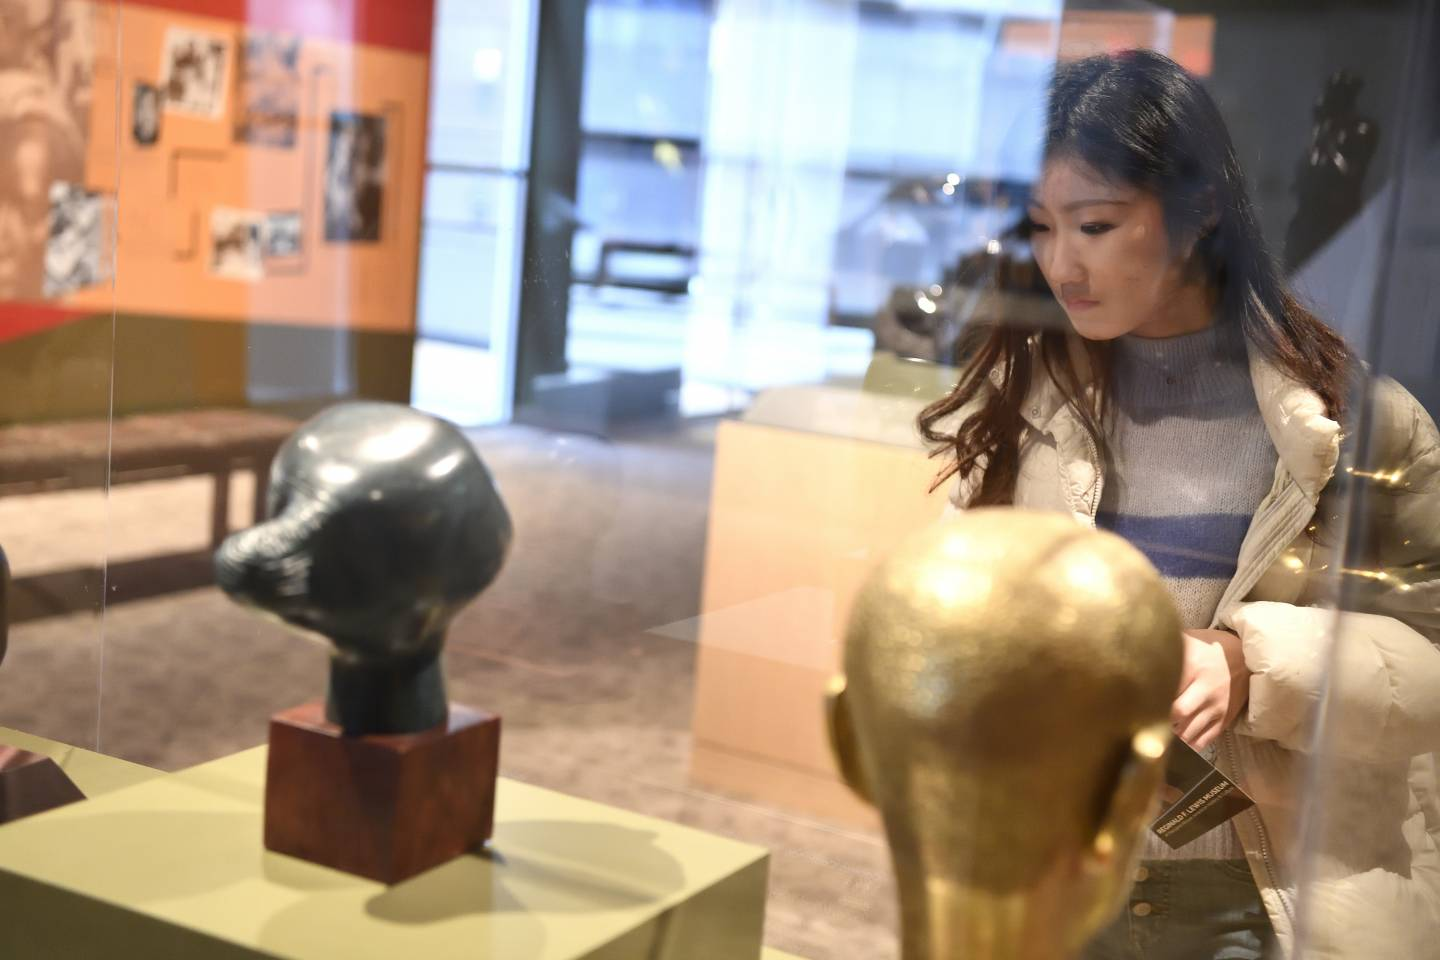 A woman examines an exhibit in a museum